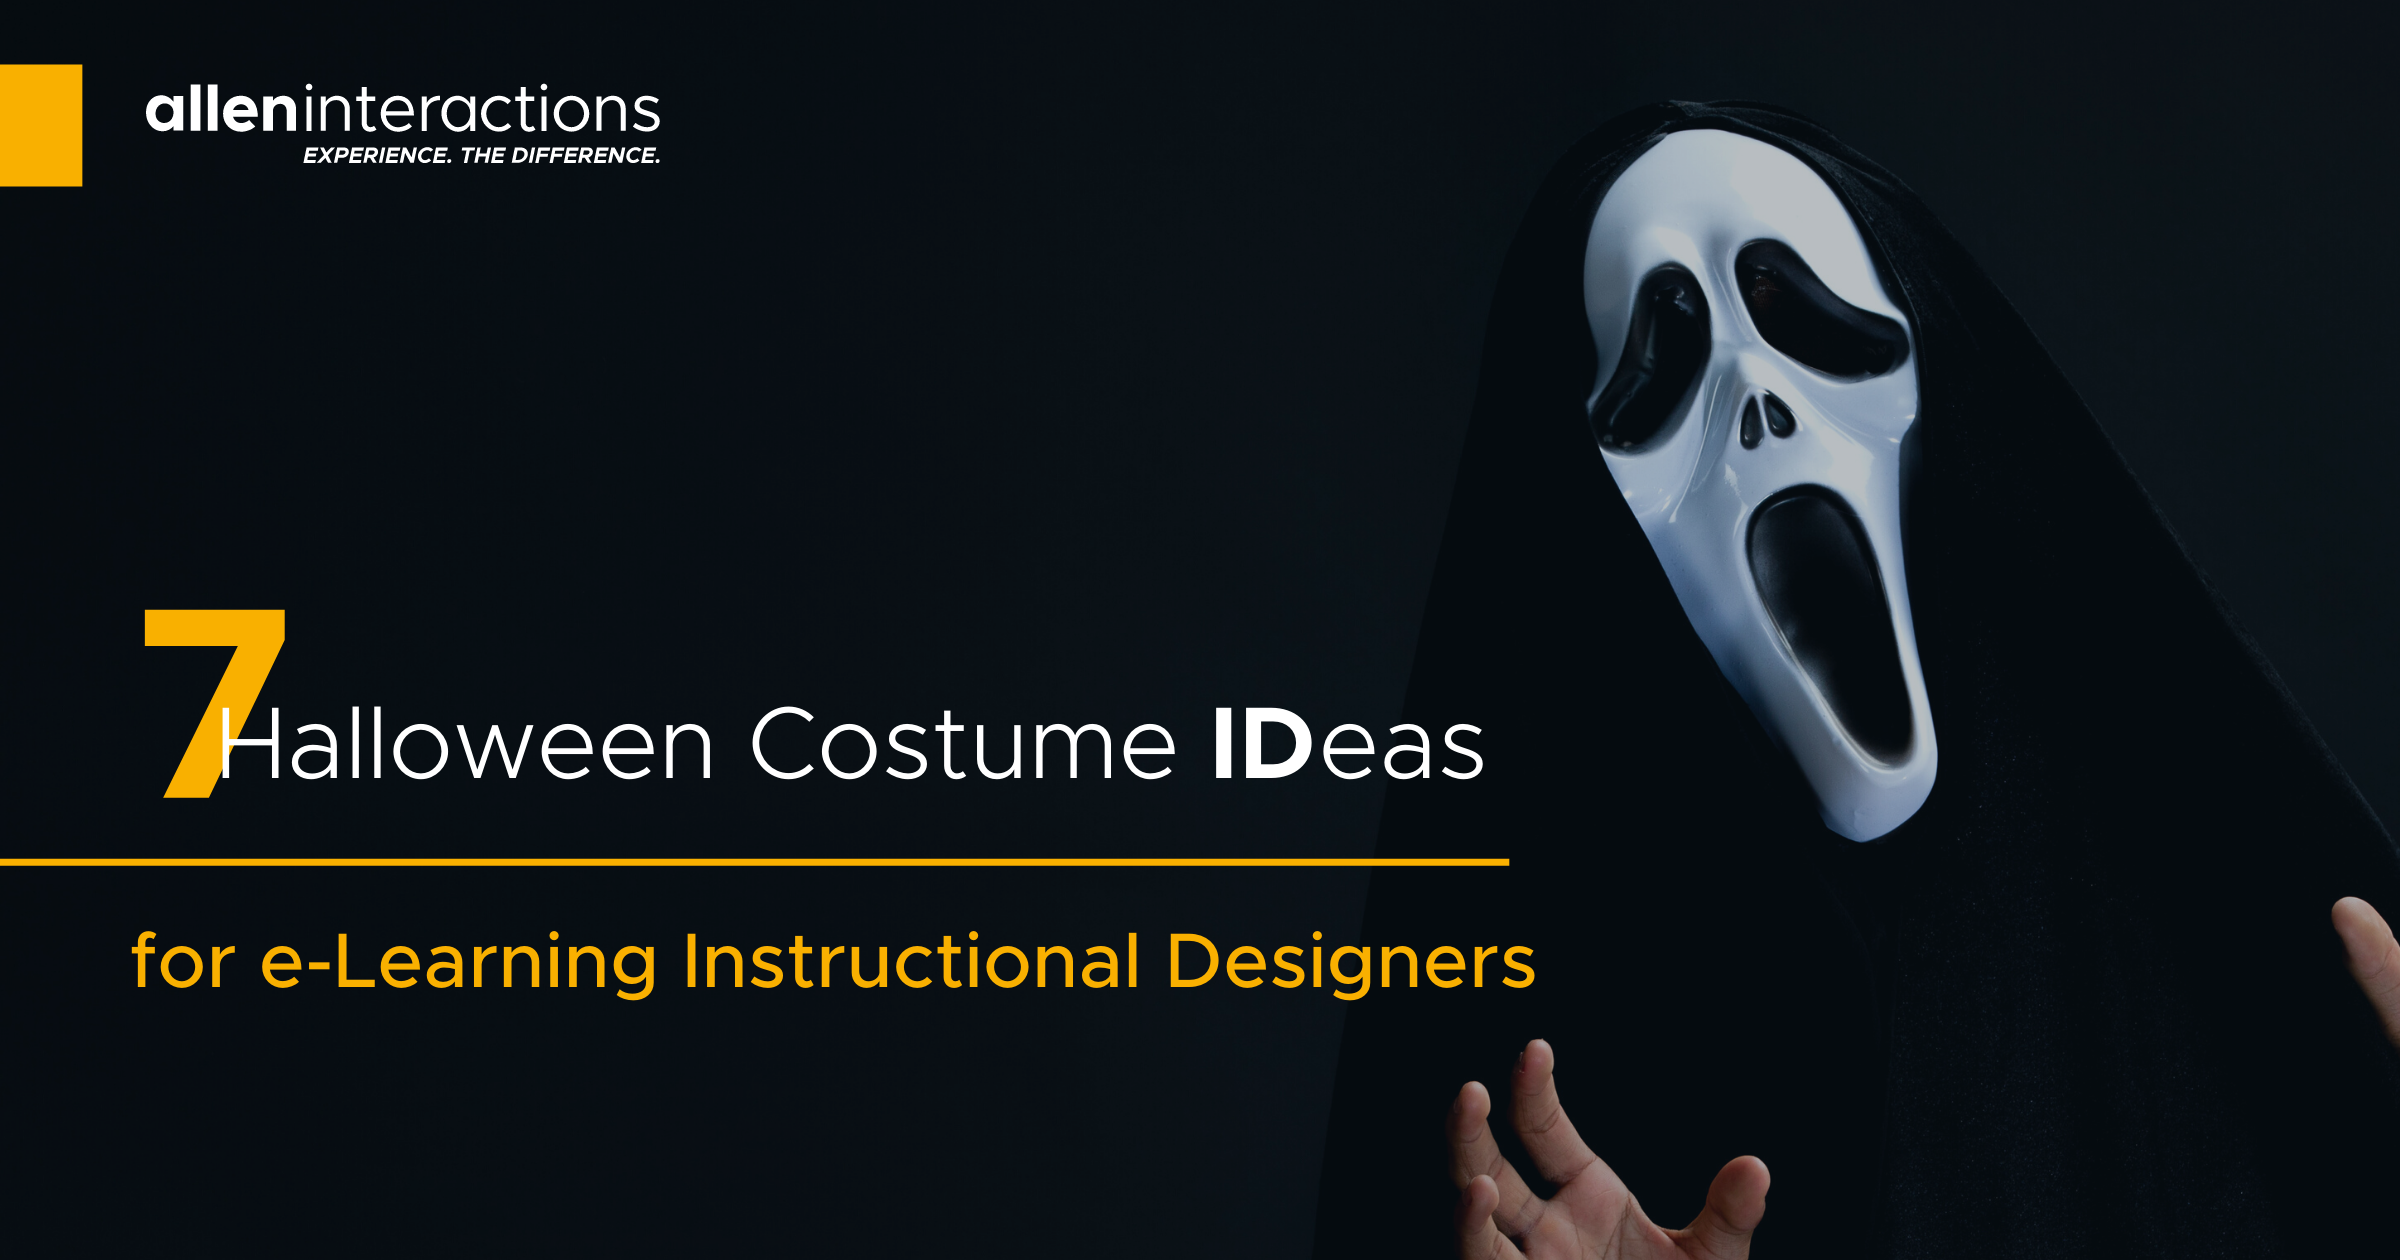 Seven Halloween Costume IDeas for e-Learning Instructional Designers